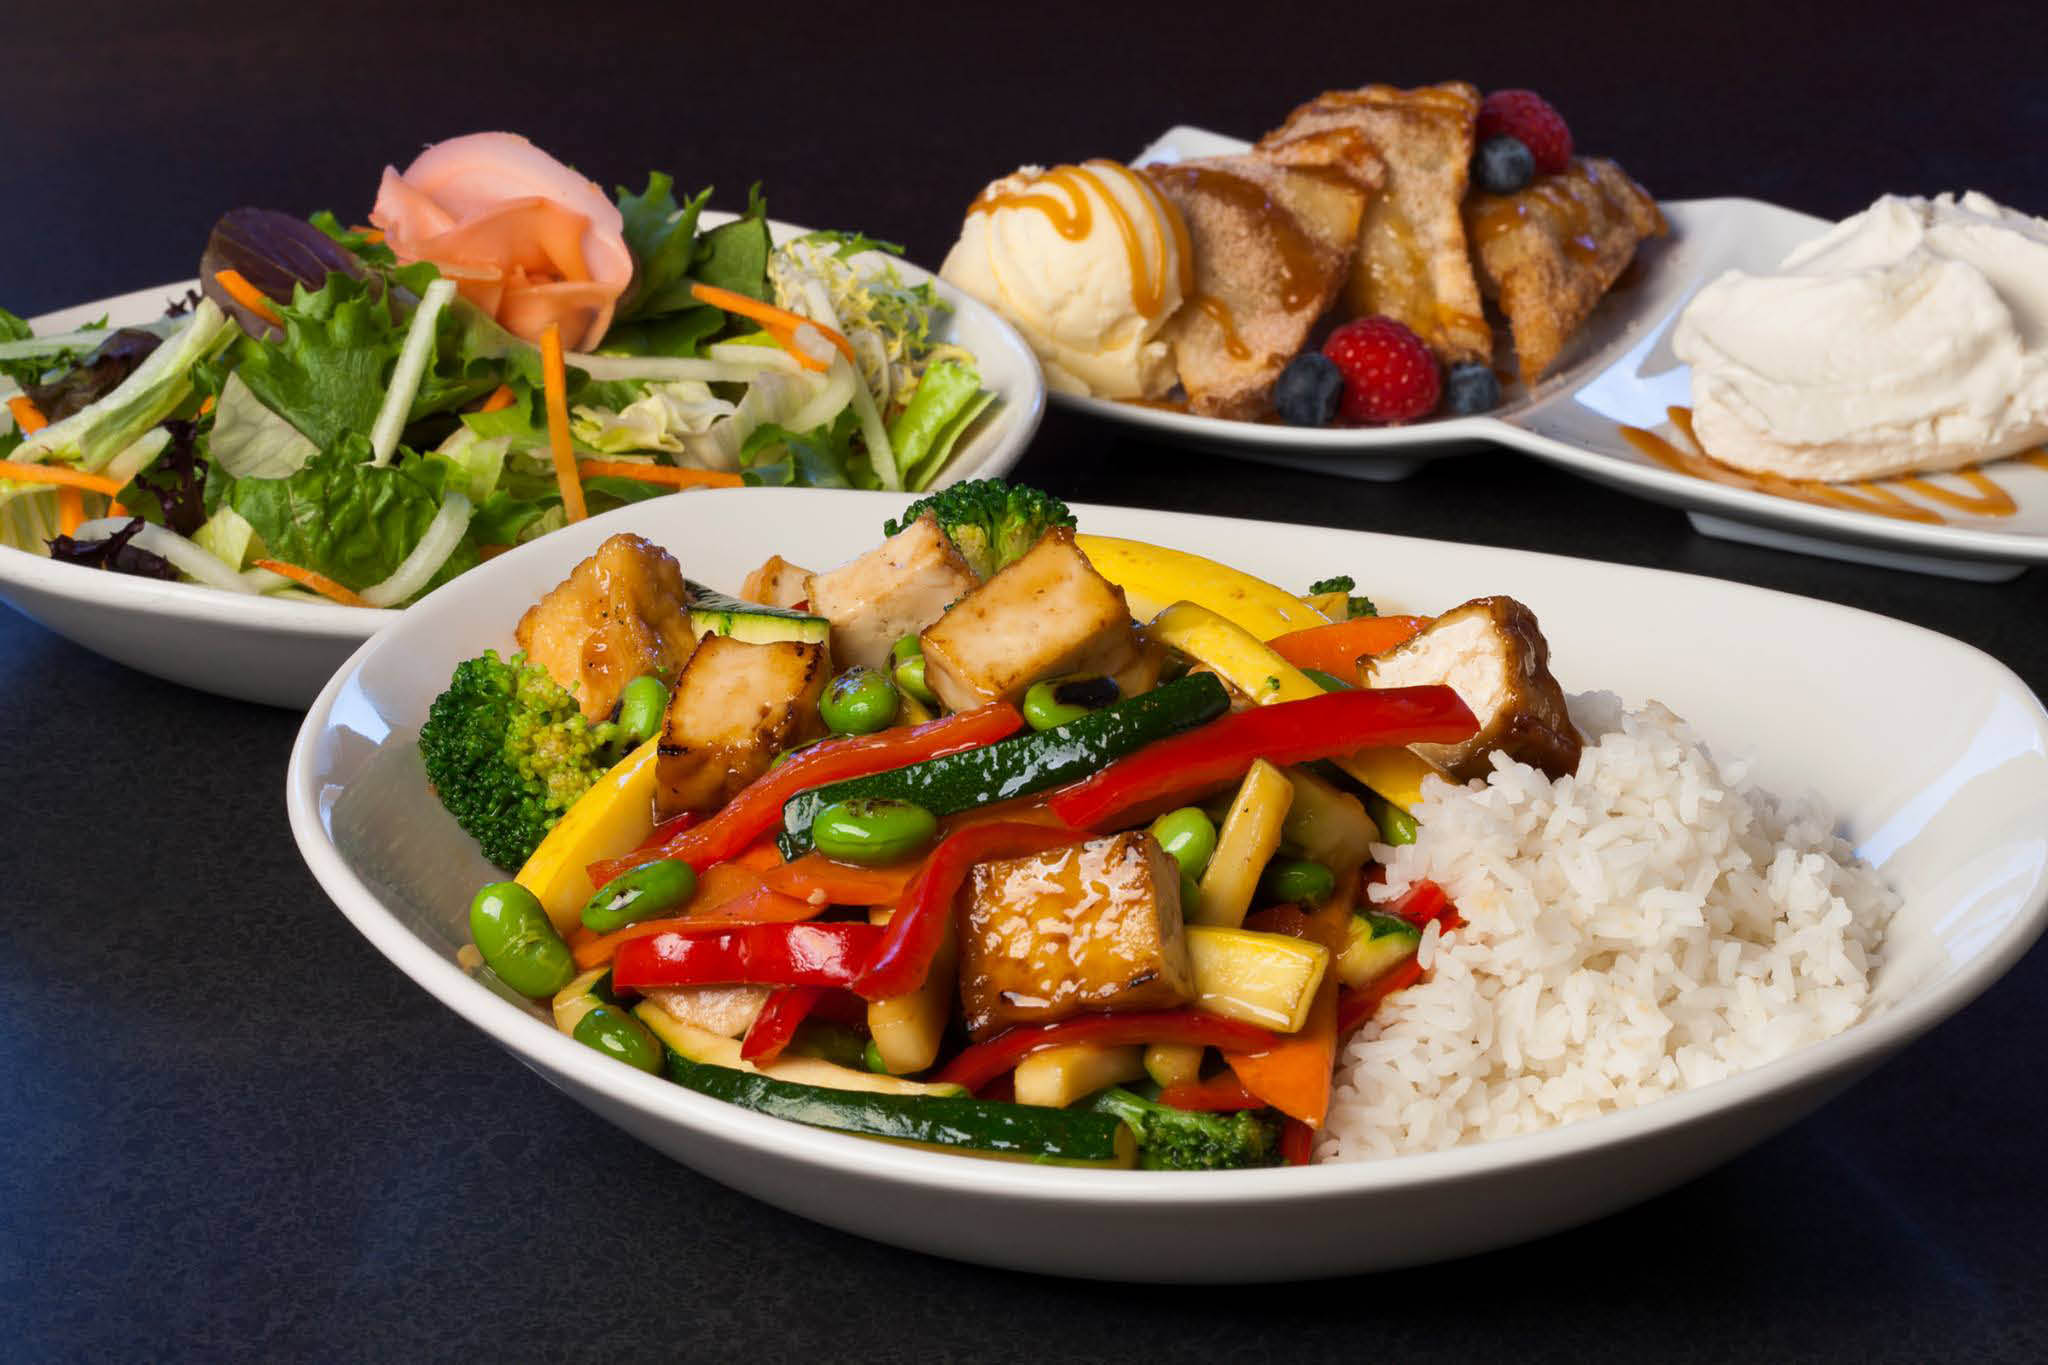 Photo of Asian plates of food from Stir Crazy near Elm grove, WI